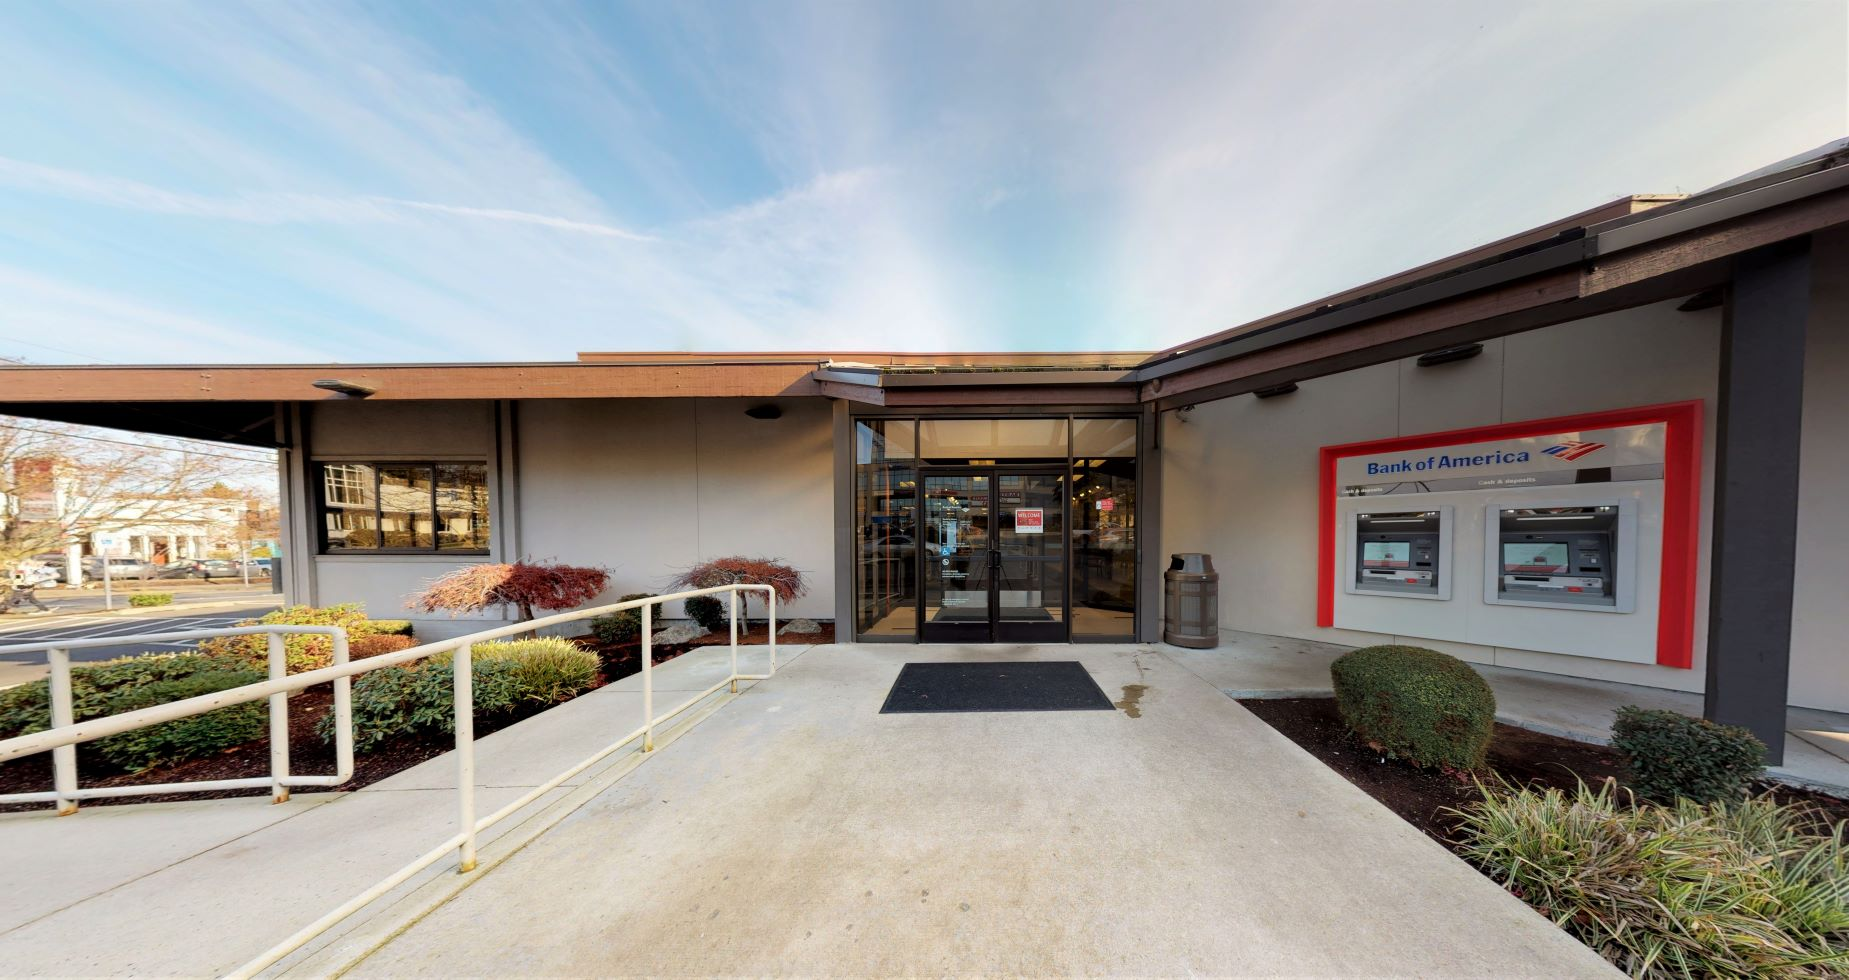 Bank of America financial center with walk-up ATM | 4001 SW Alaska St, Seattle, WA 98116